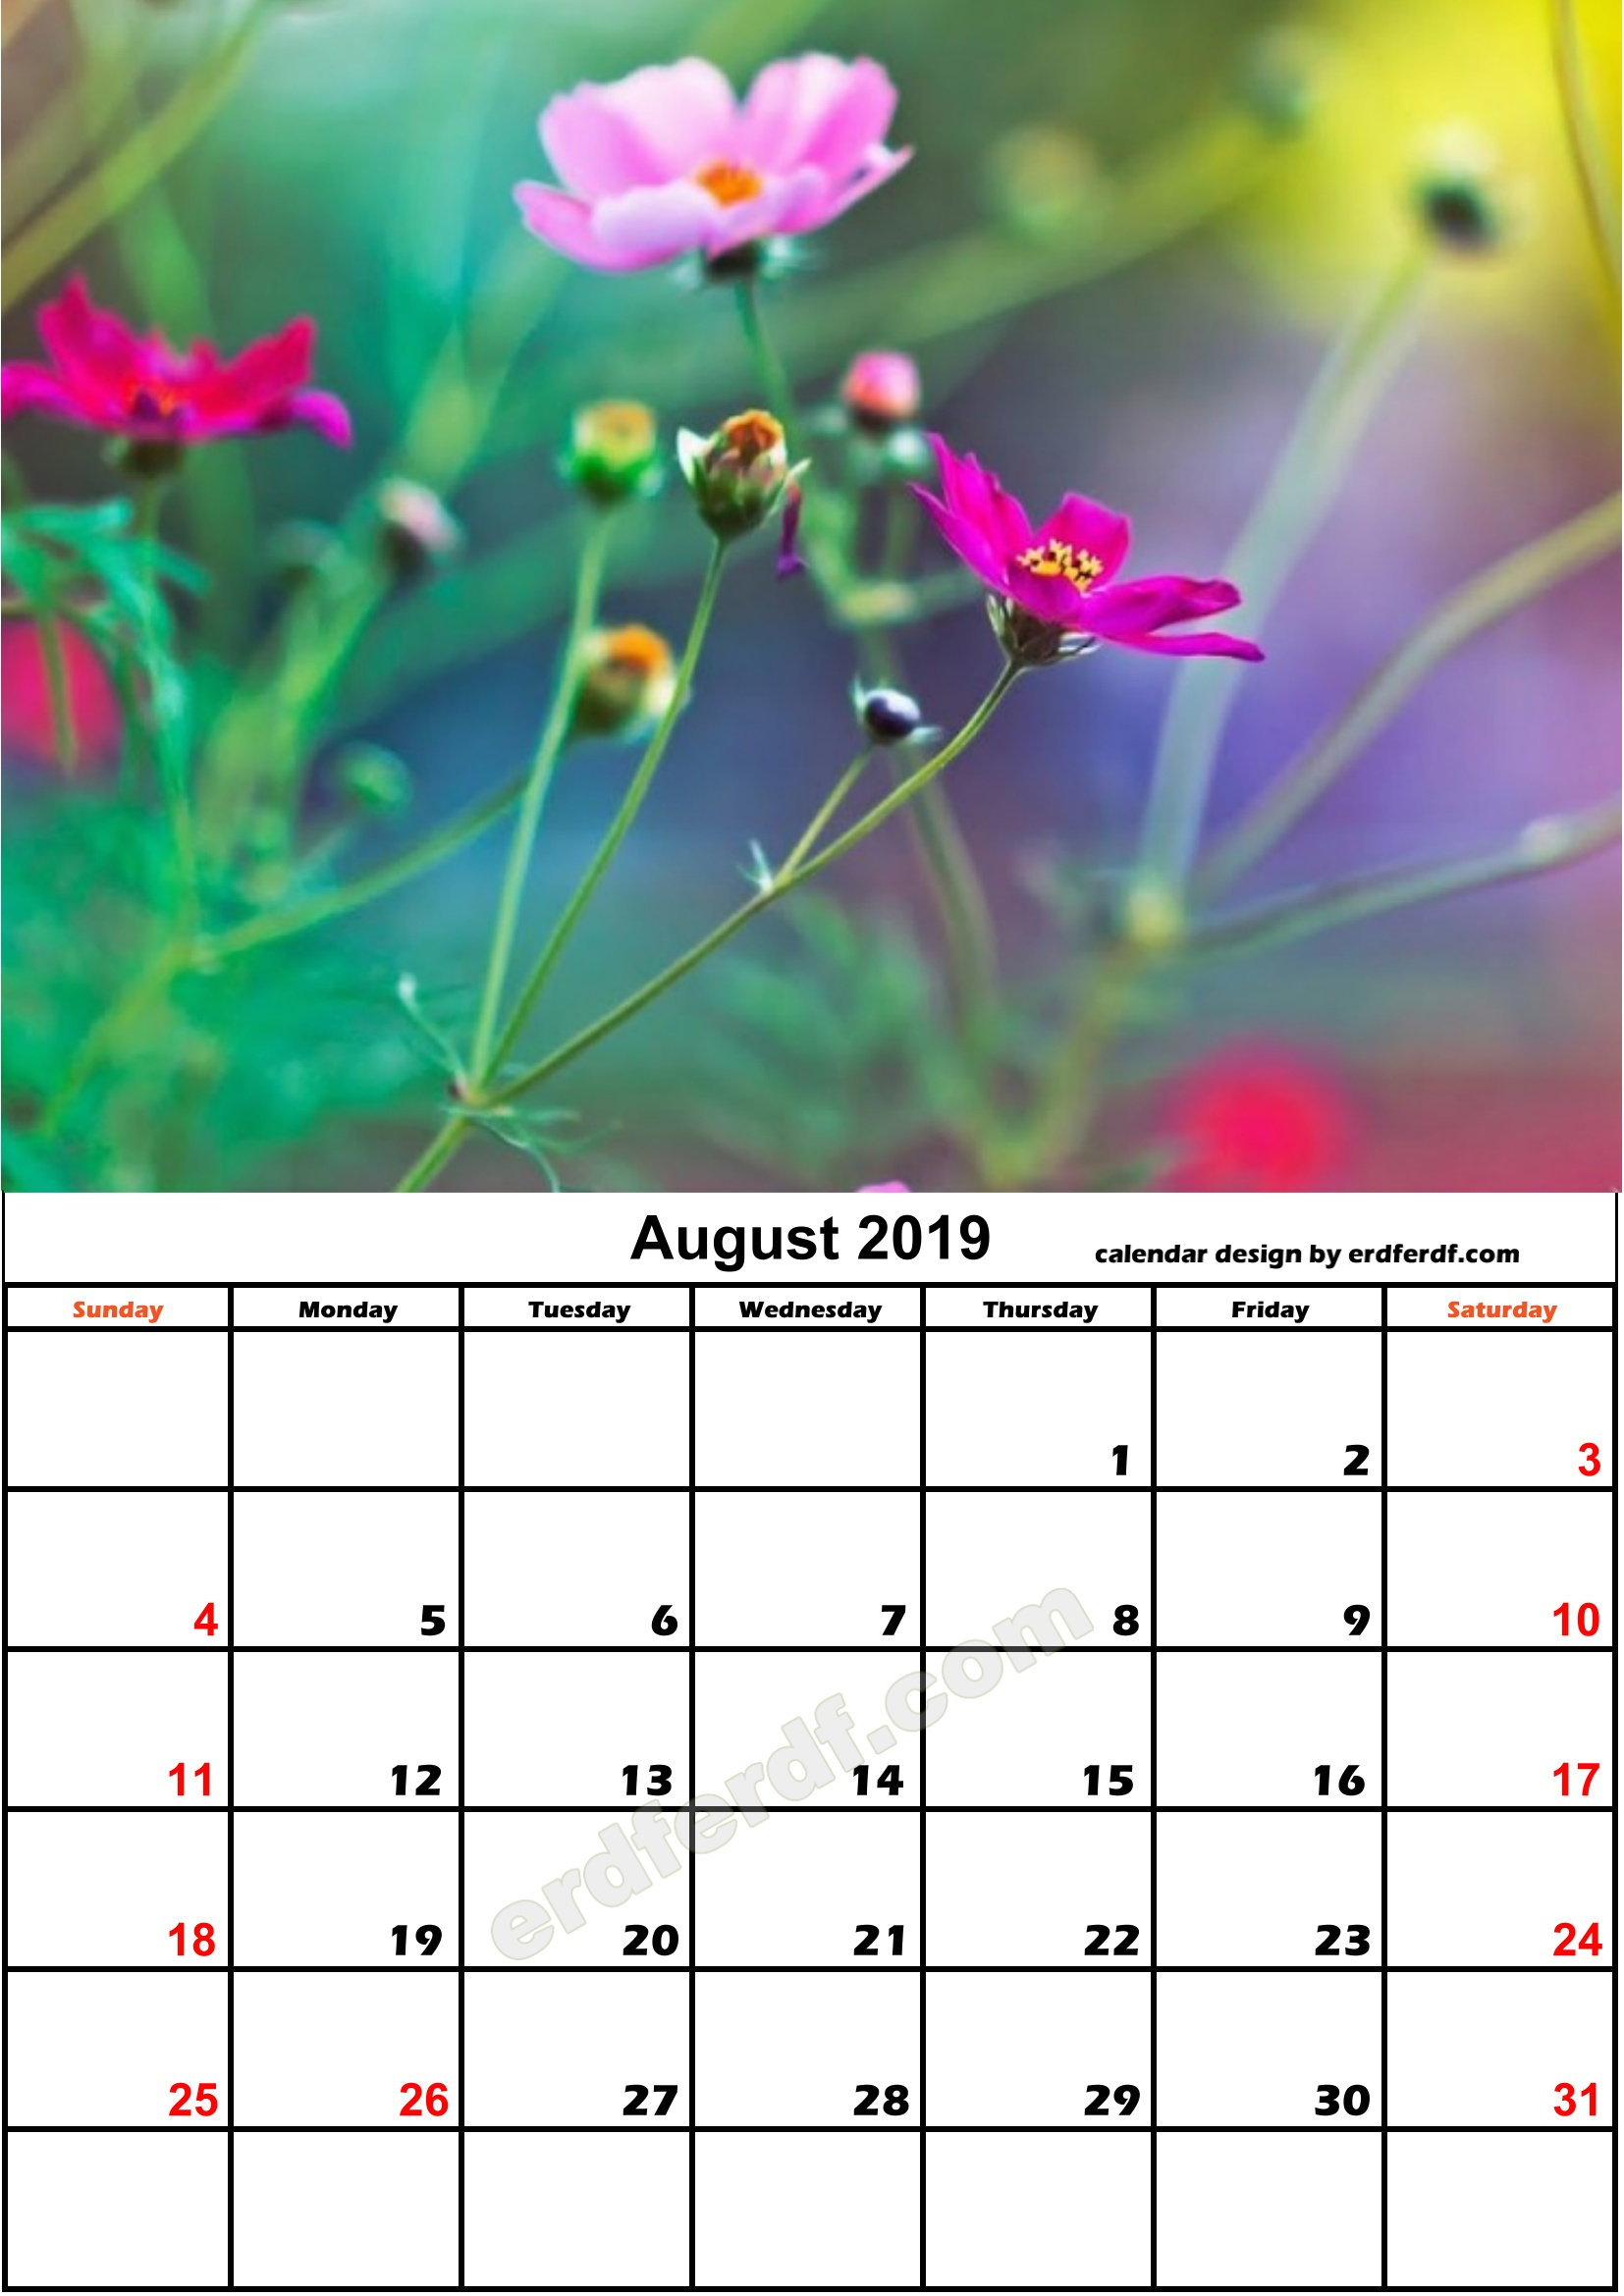 8 Flower August Calendar Nature Calendar Monthly 2019 Free Download